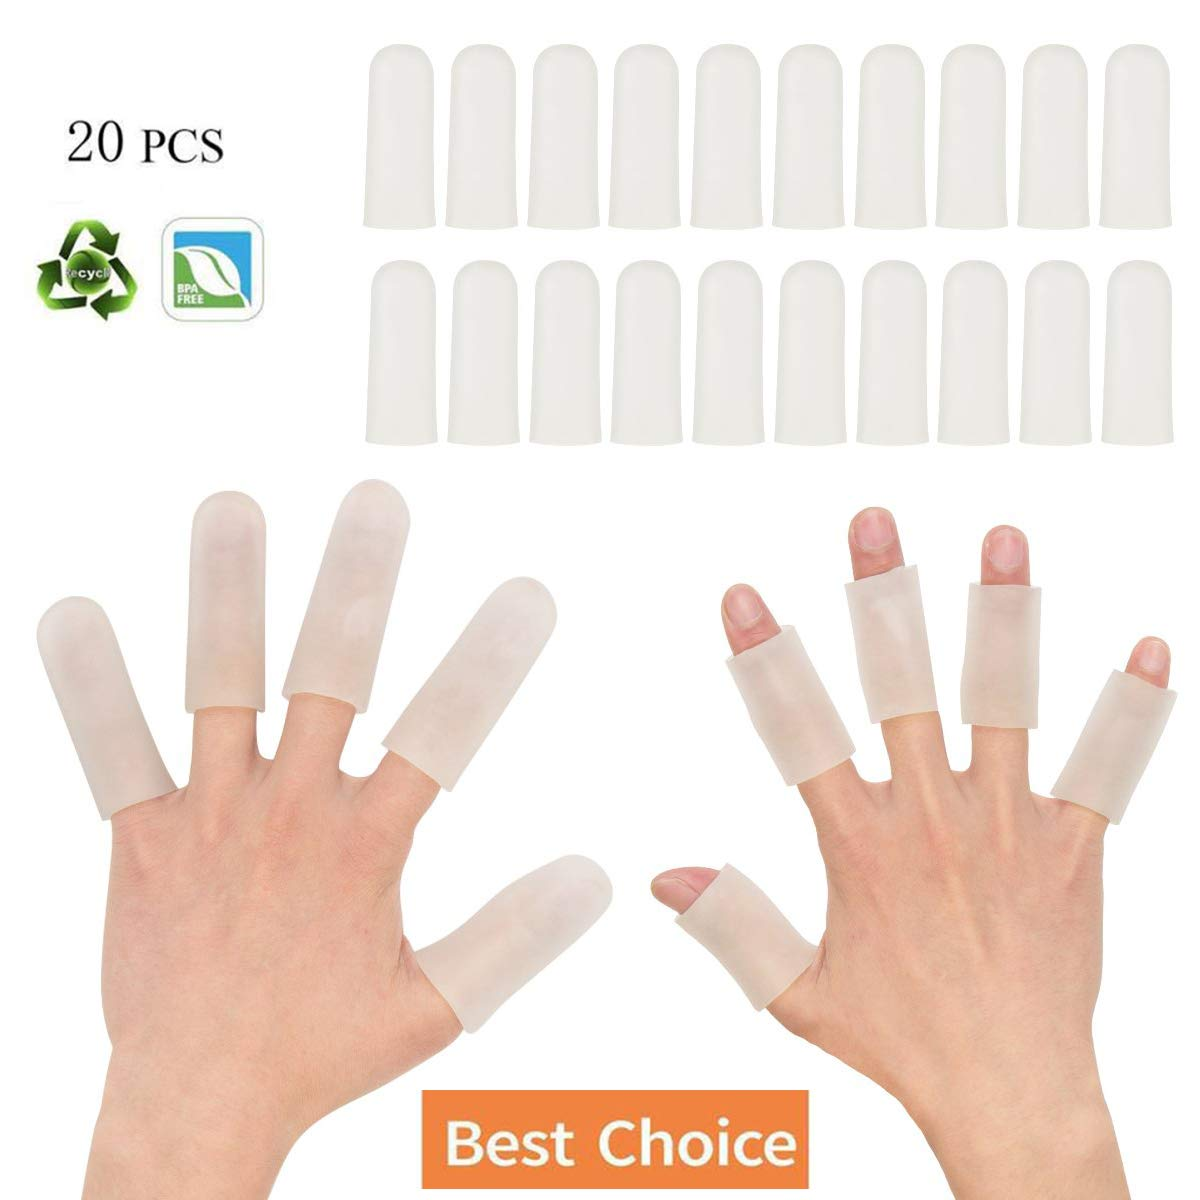 Sporting Style Gel Finger Covers,Silicone Finger Cots,Finger Protector for Women and Men, Great for Trigger Finger, Hand Eczema, Finger Cracking, Finger Arthritis and More(20-Pack) by Sporting Style